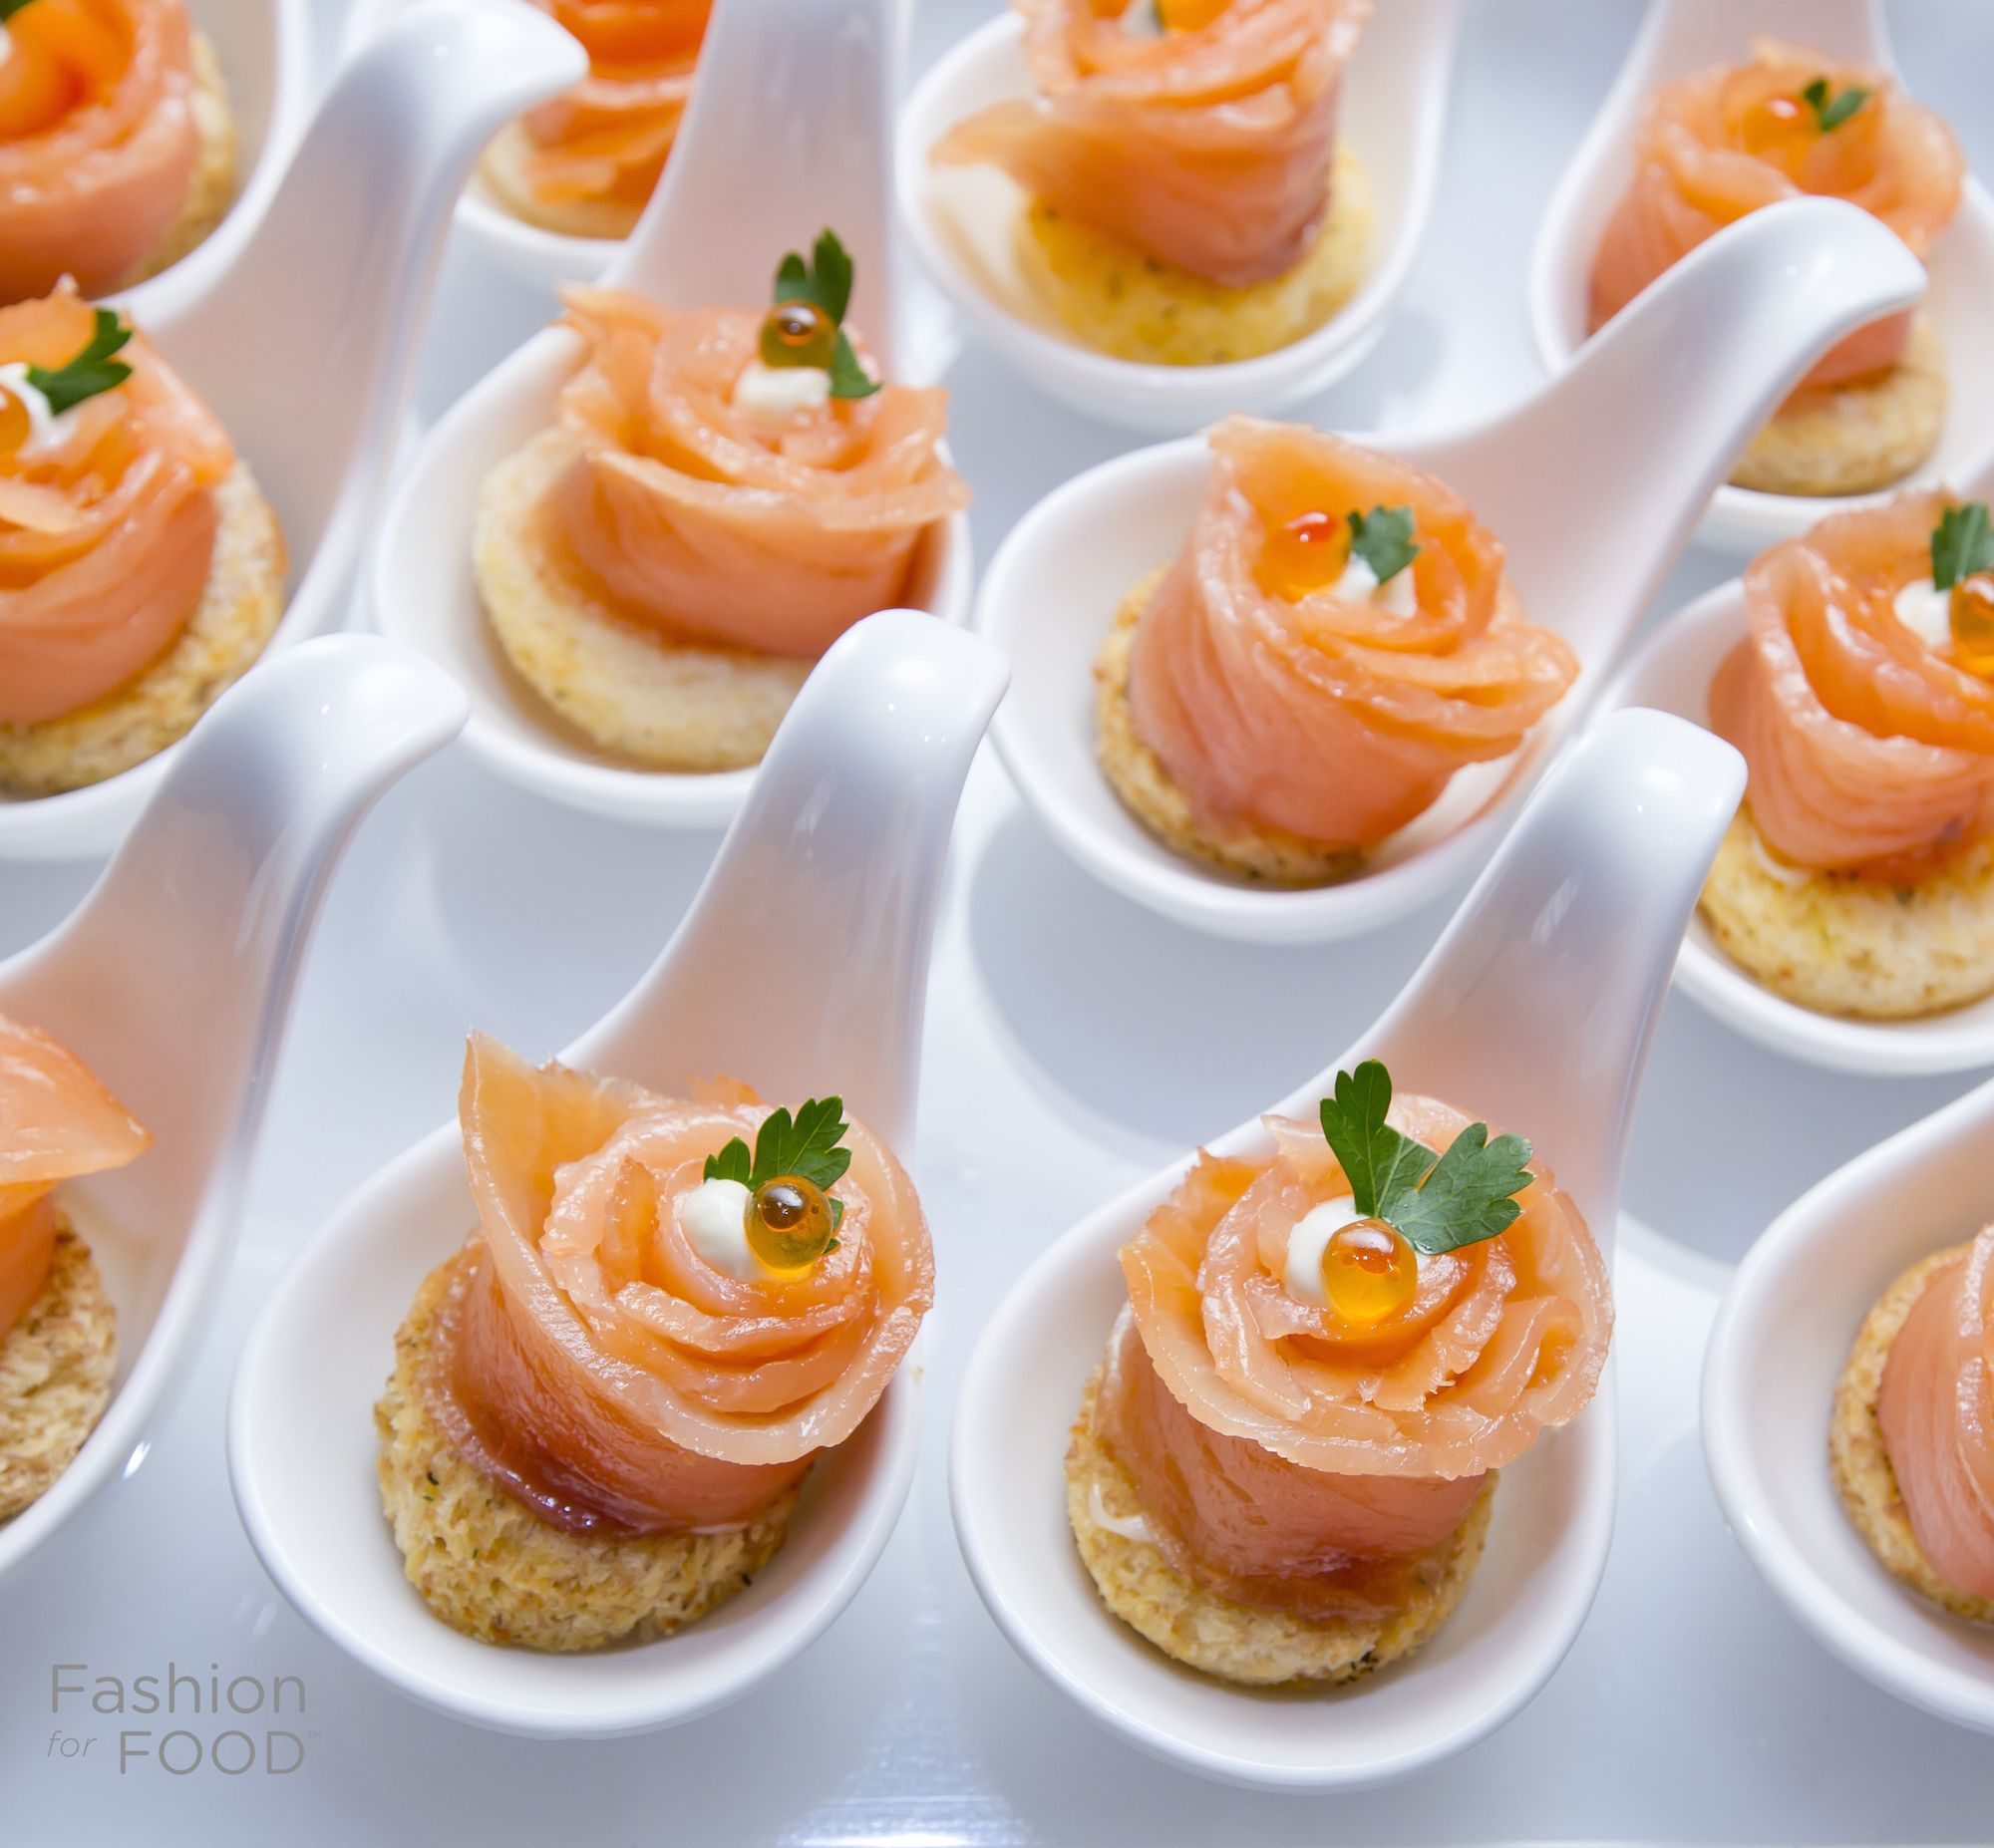 Asian Wedding Food Caterers: Salmon & Caviar Appetizers #Appetizers #Fooporn